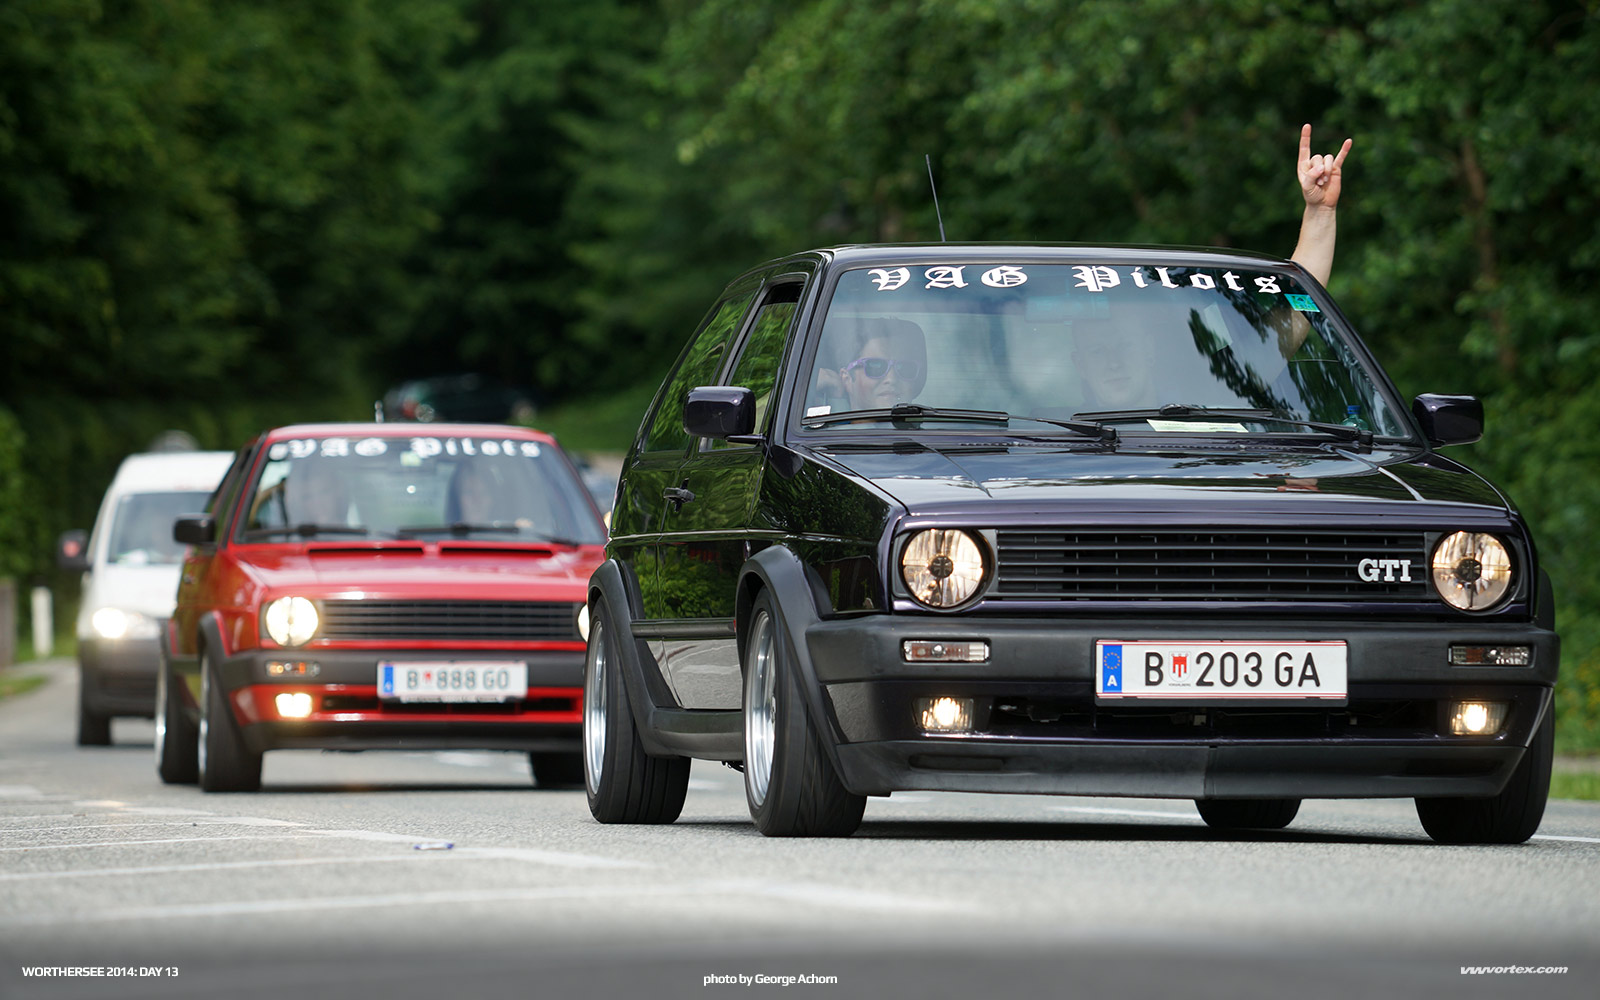 2014 Worthersee Day 14 VW296 110x60